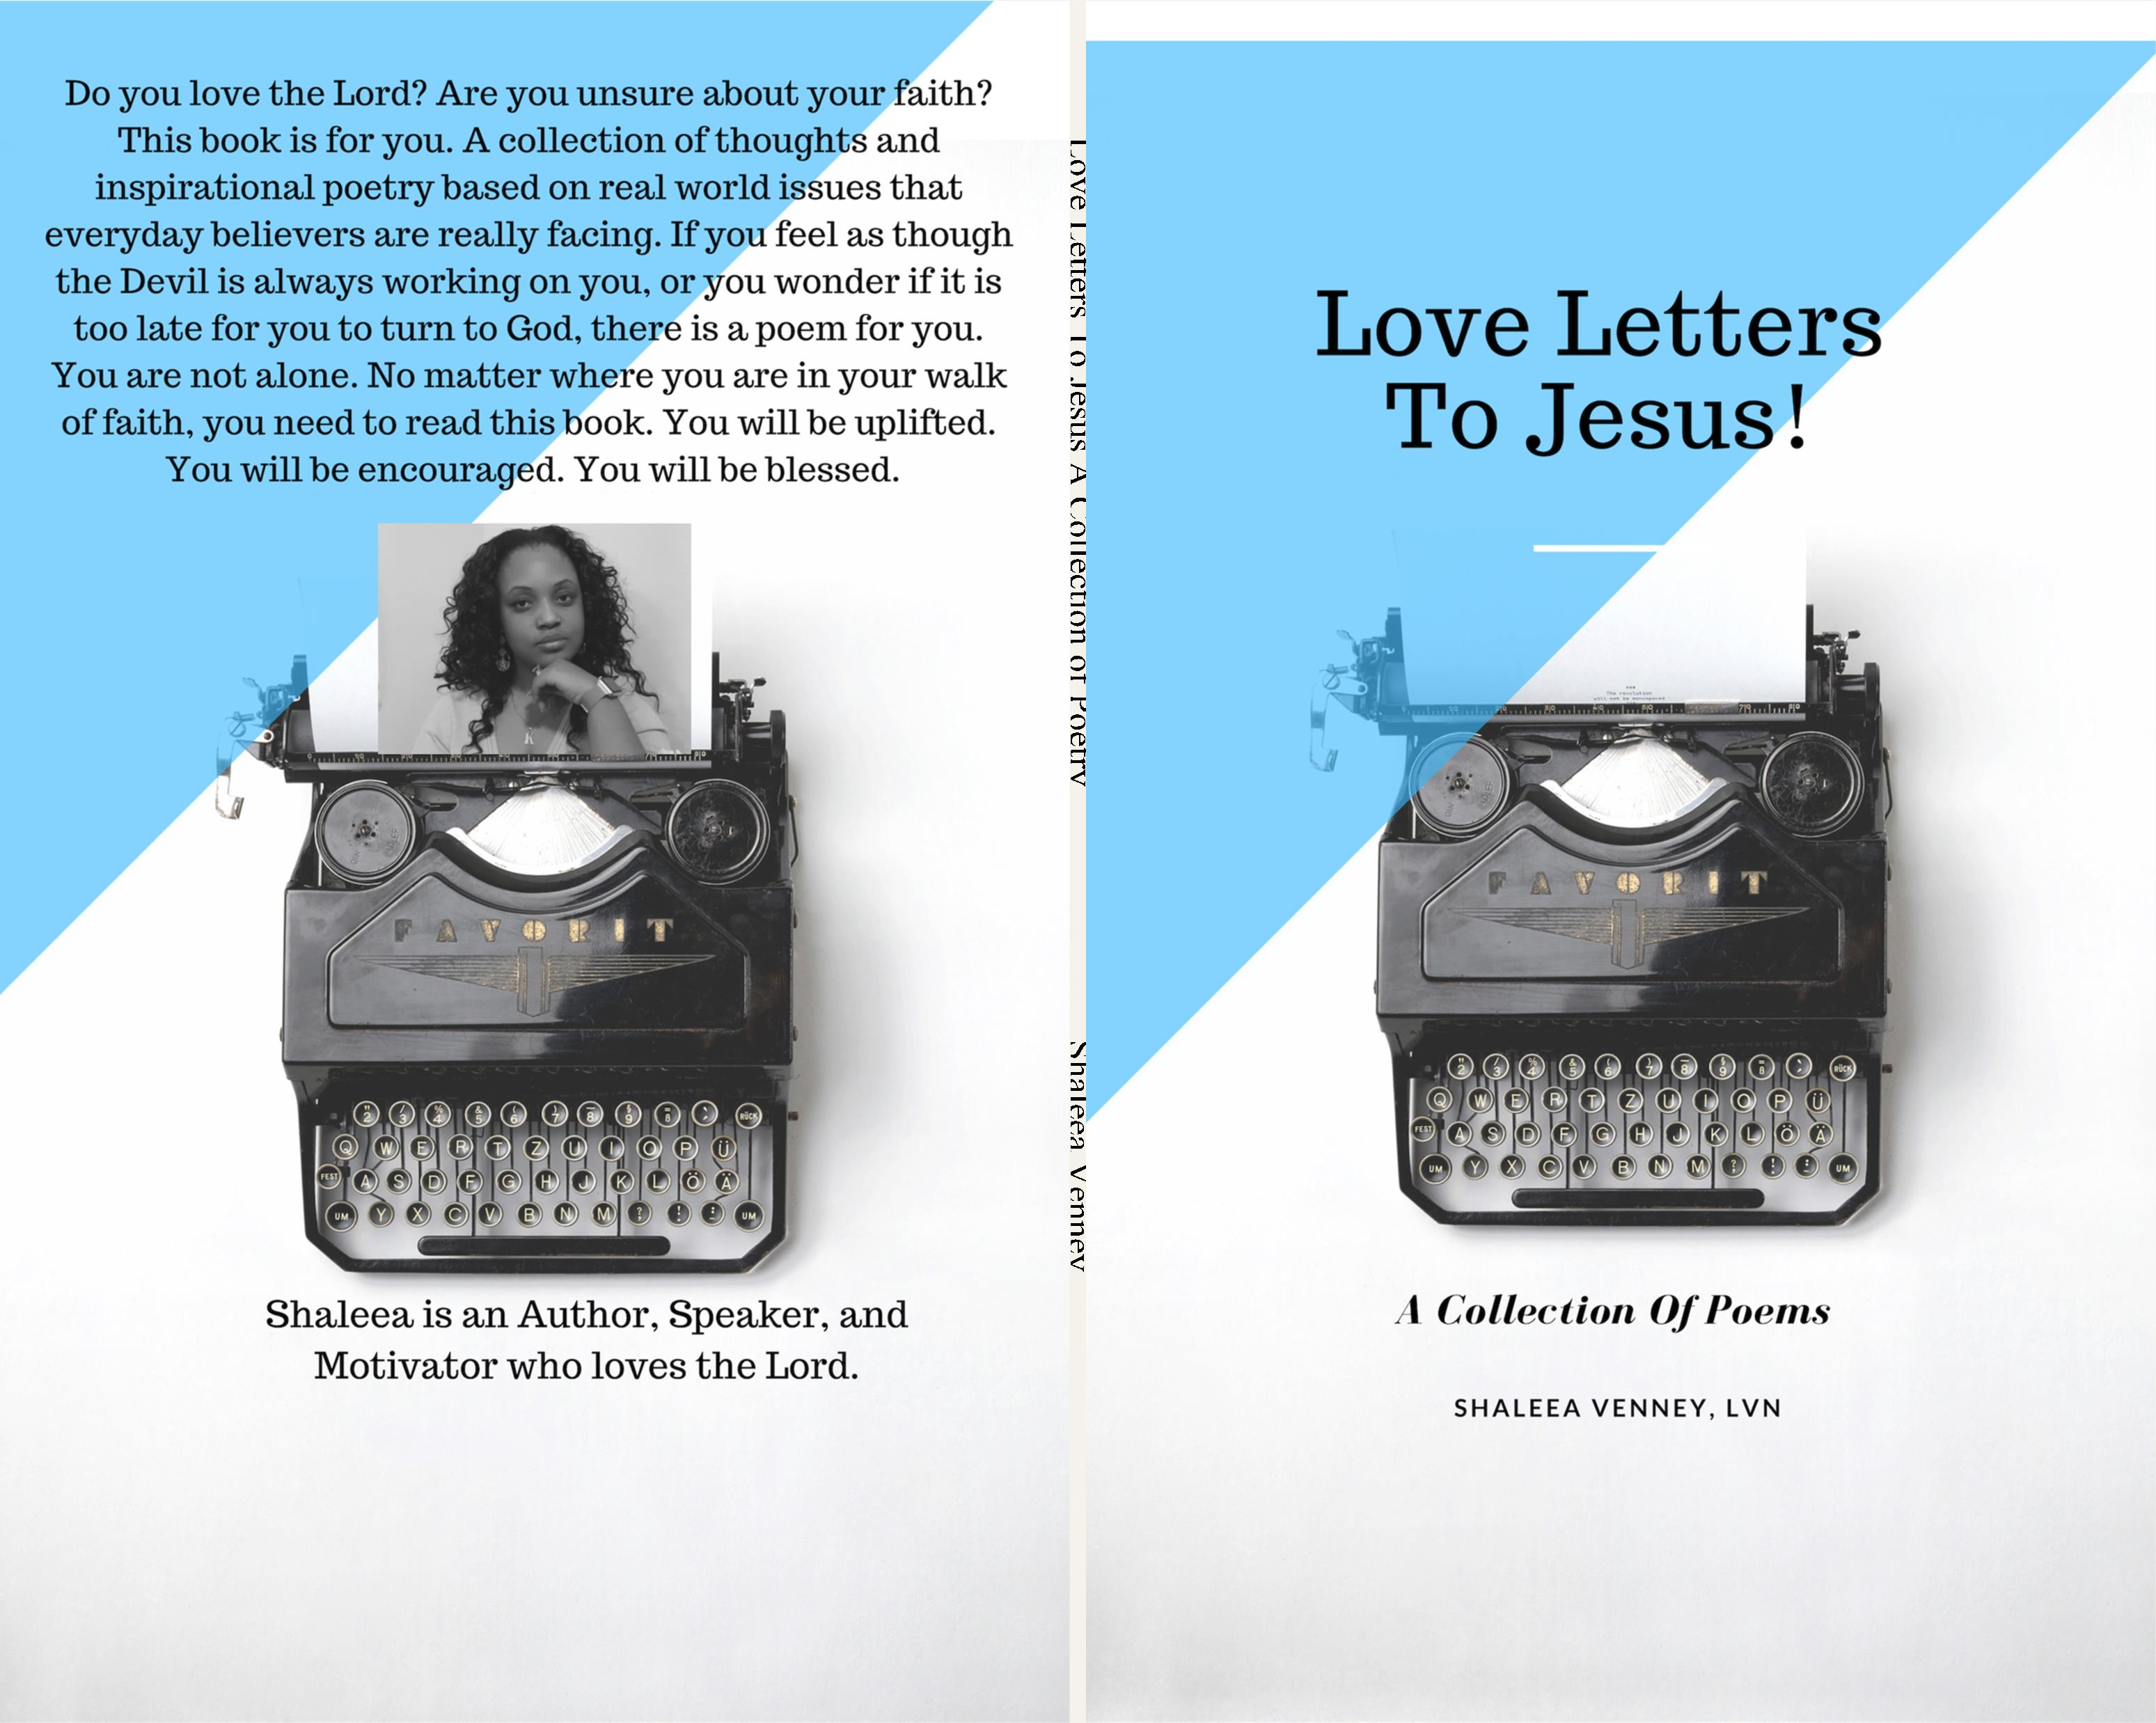 Love Letters To Jesus A Collection of Poetry cover image